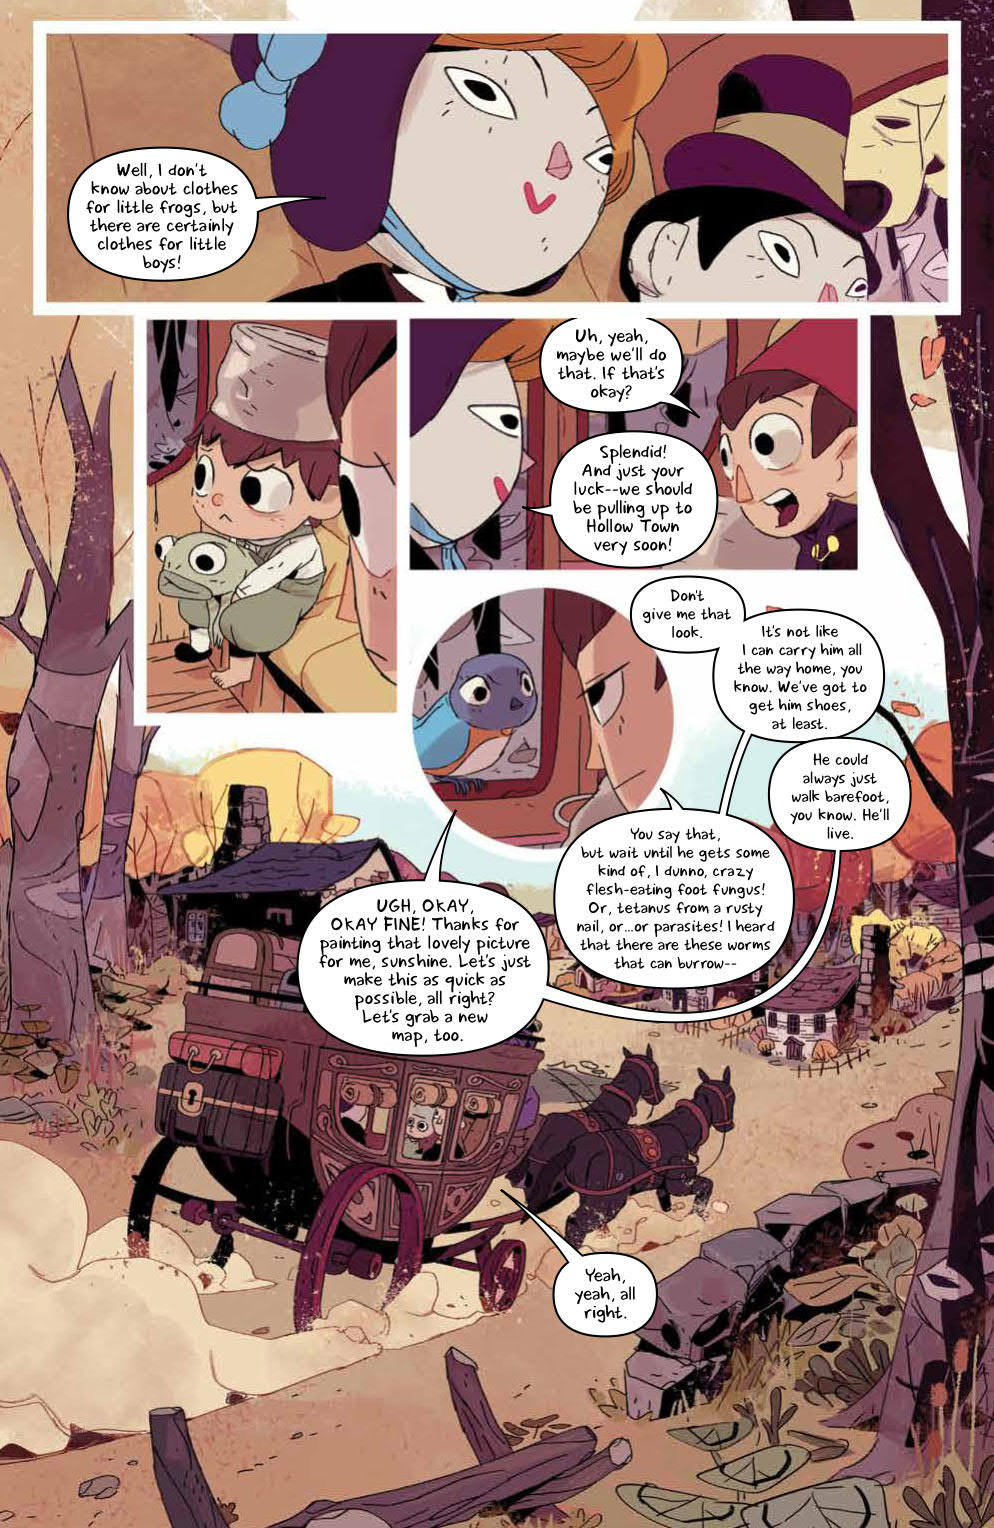 Over The Garden Wall: Hollow Town: Page 19, Dolls, Wirt, Greg and Beatrice arriving to Hollow town.